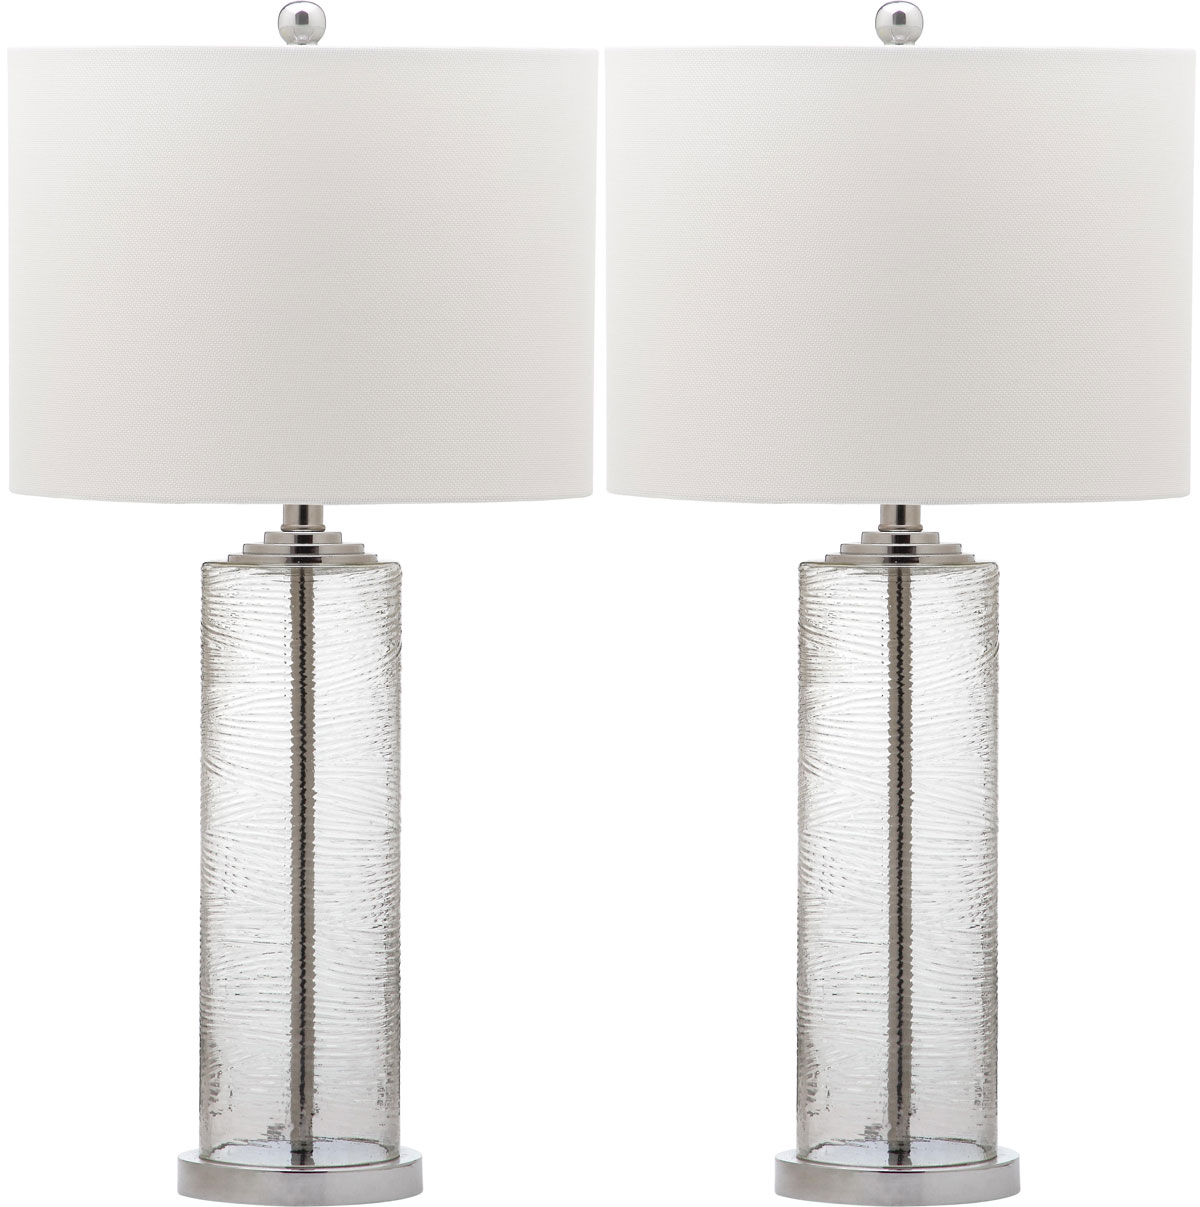 Lit4262a set2 table lamps lighting by safavieh save mozeypictures Gallery